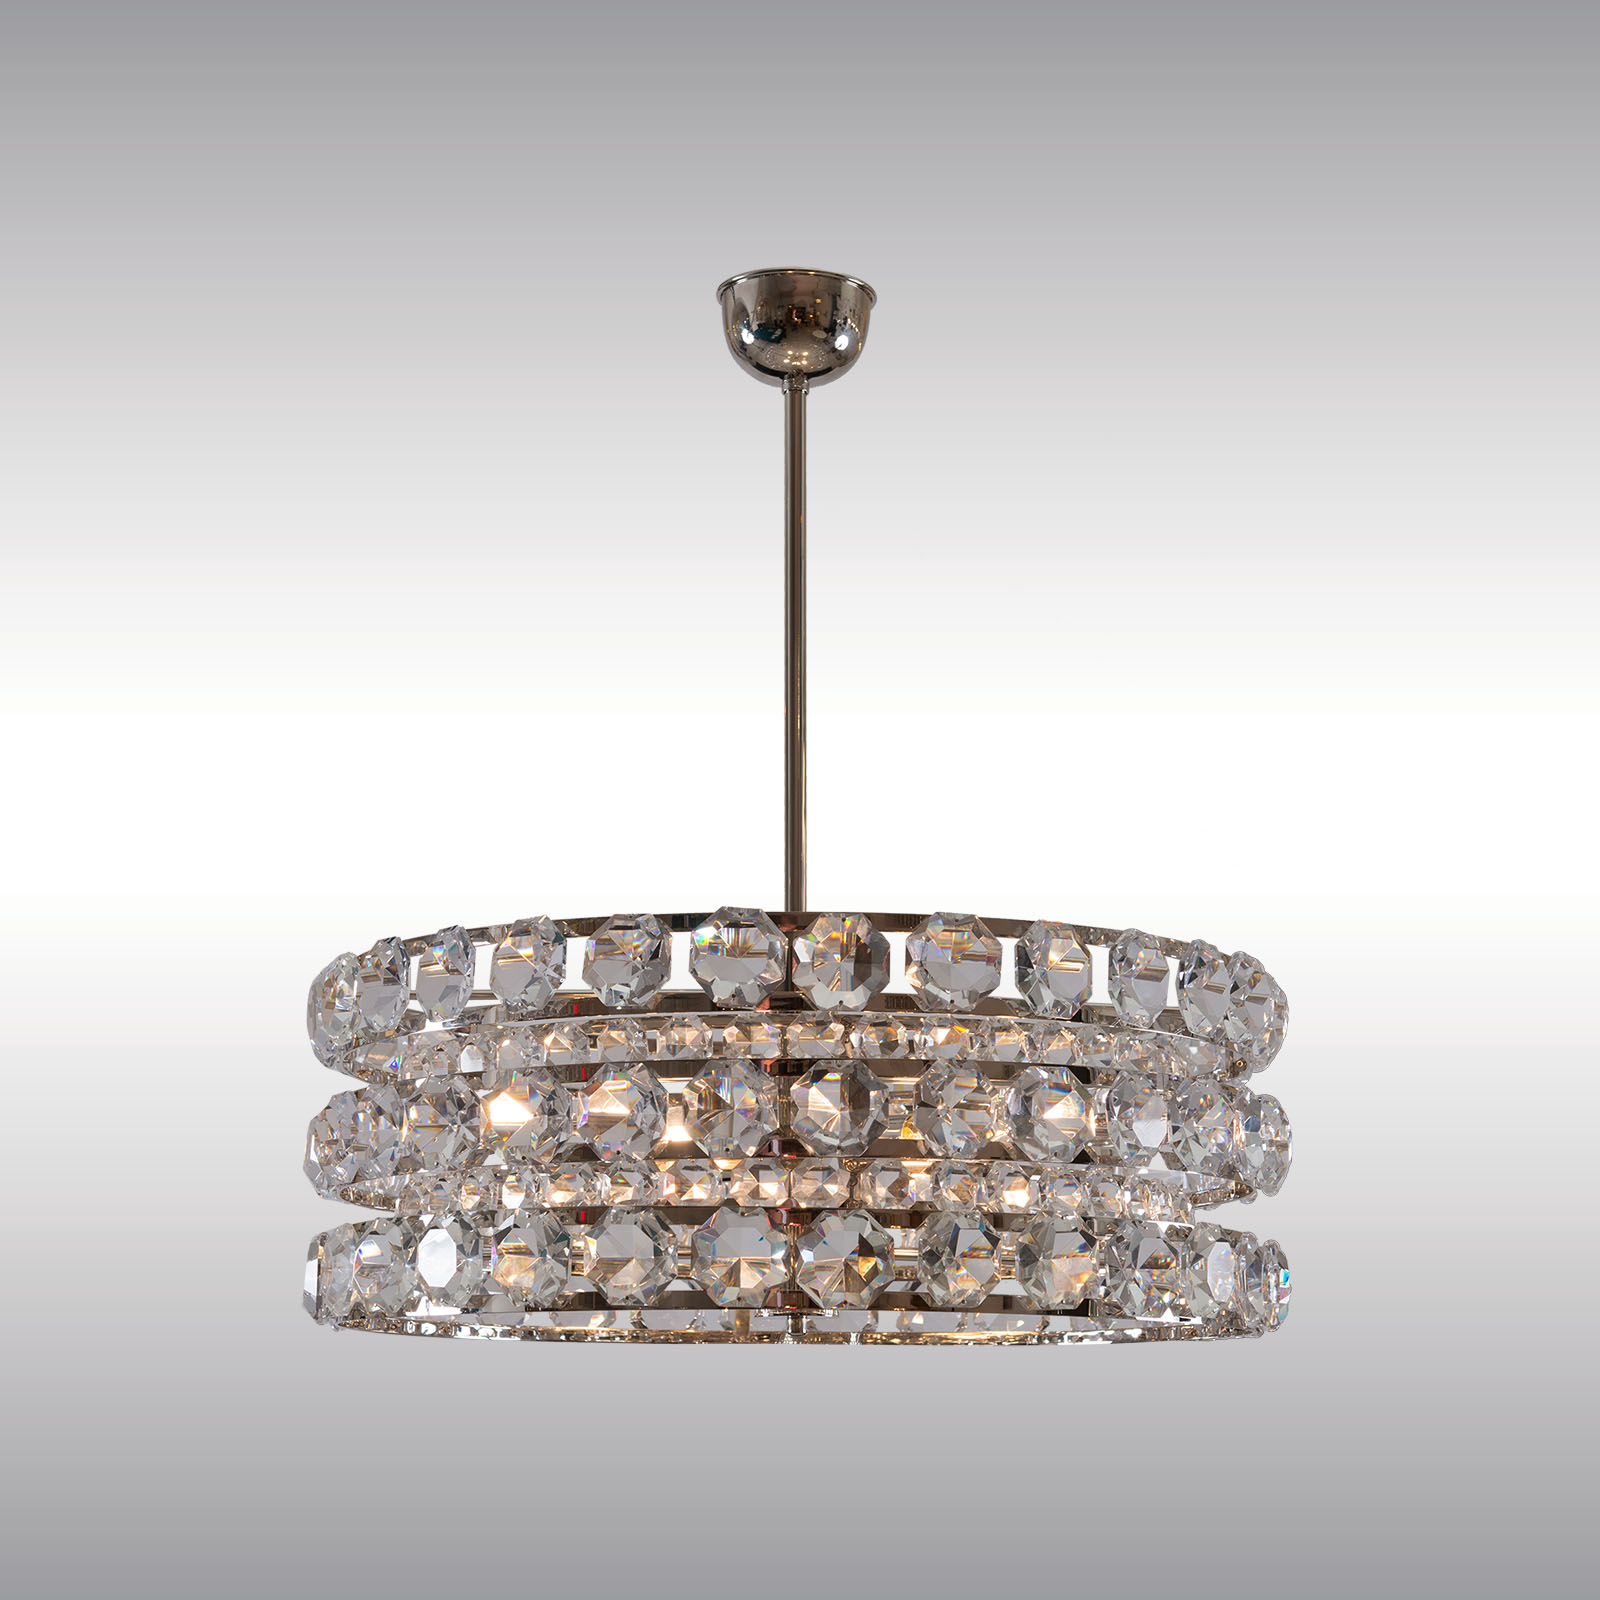 Image of: Woka Lamps Vienna 21727 Mid Century Modern Crystal Chandelier